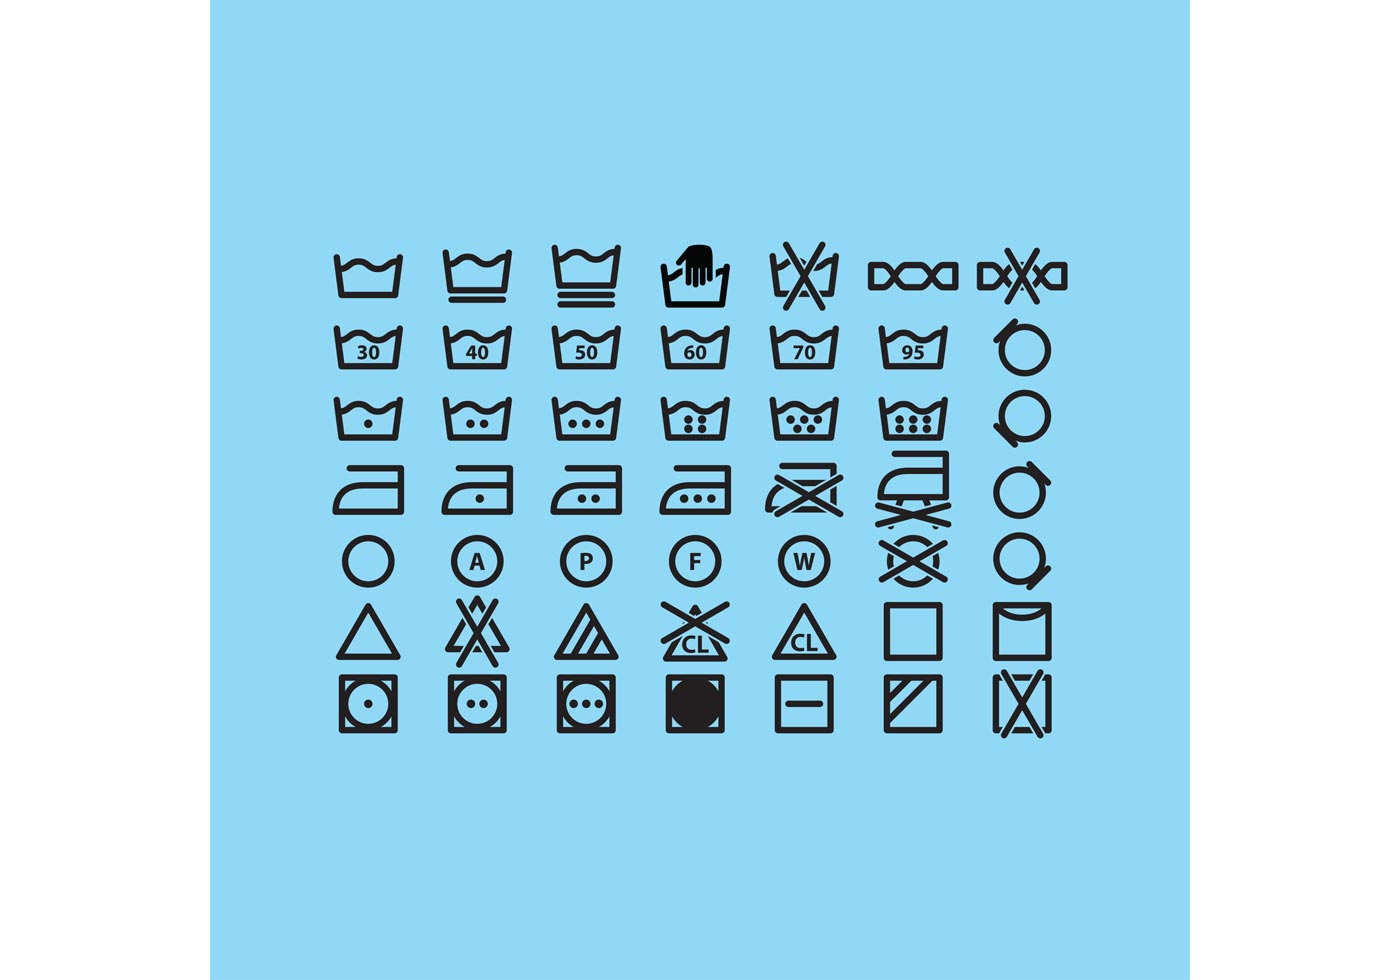 Laundry Vector Icons - Download Free Vector Art, Stock ...